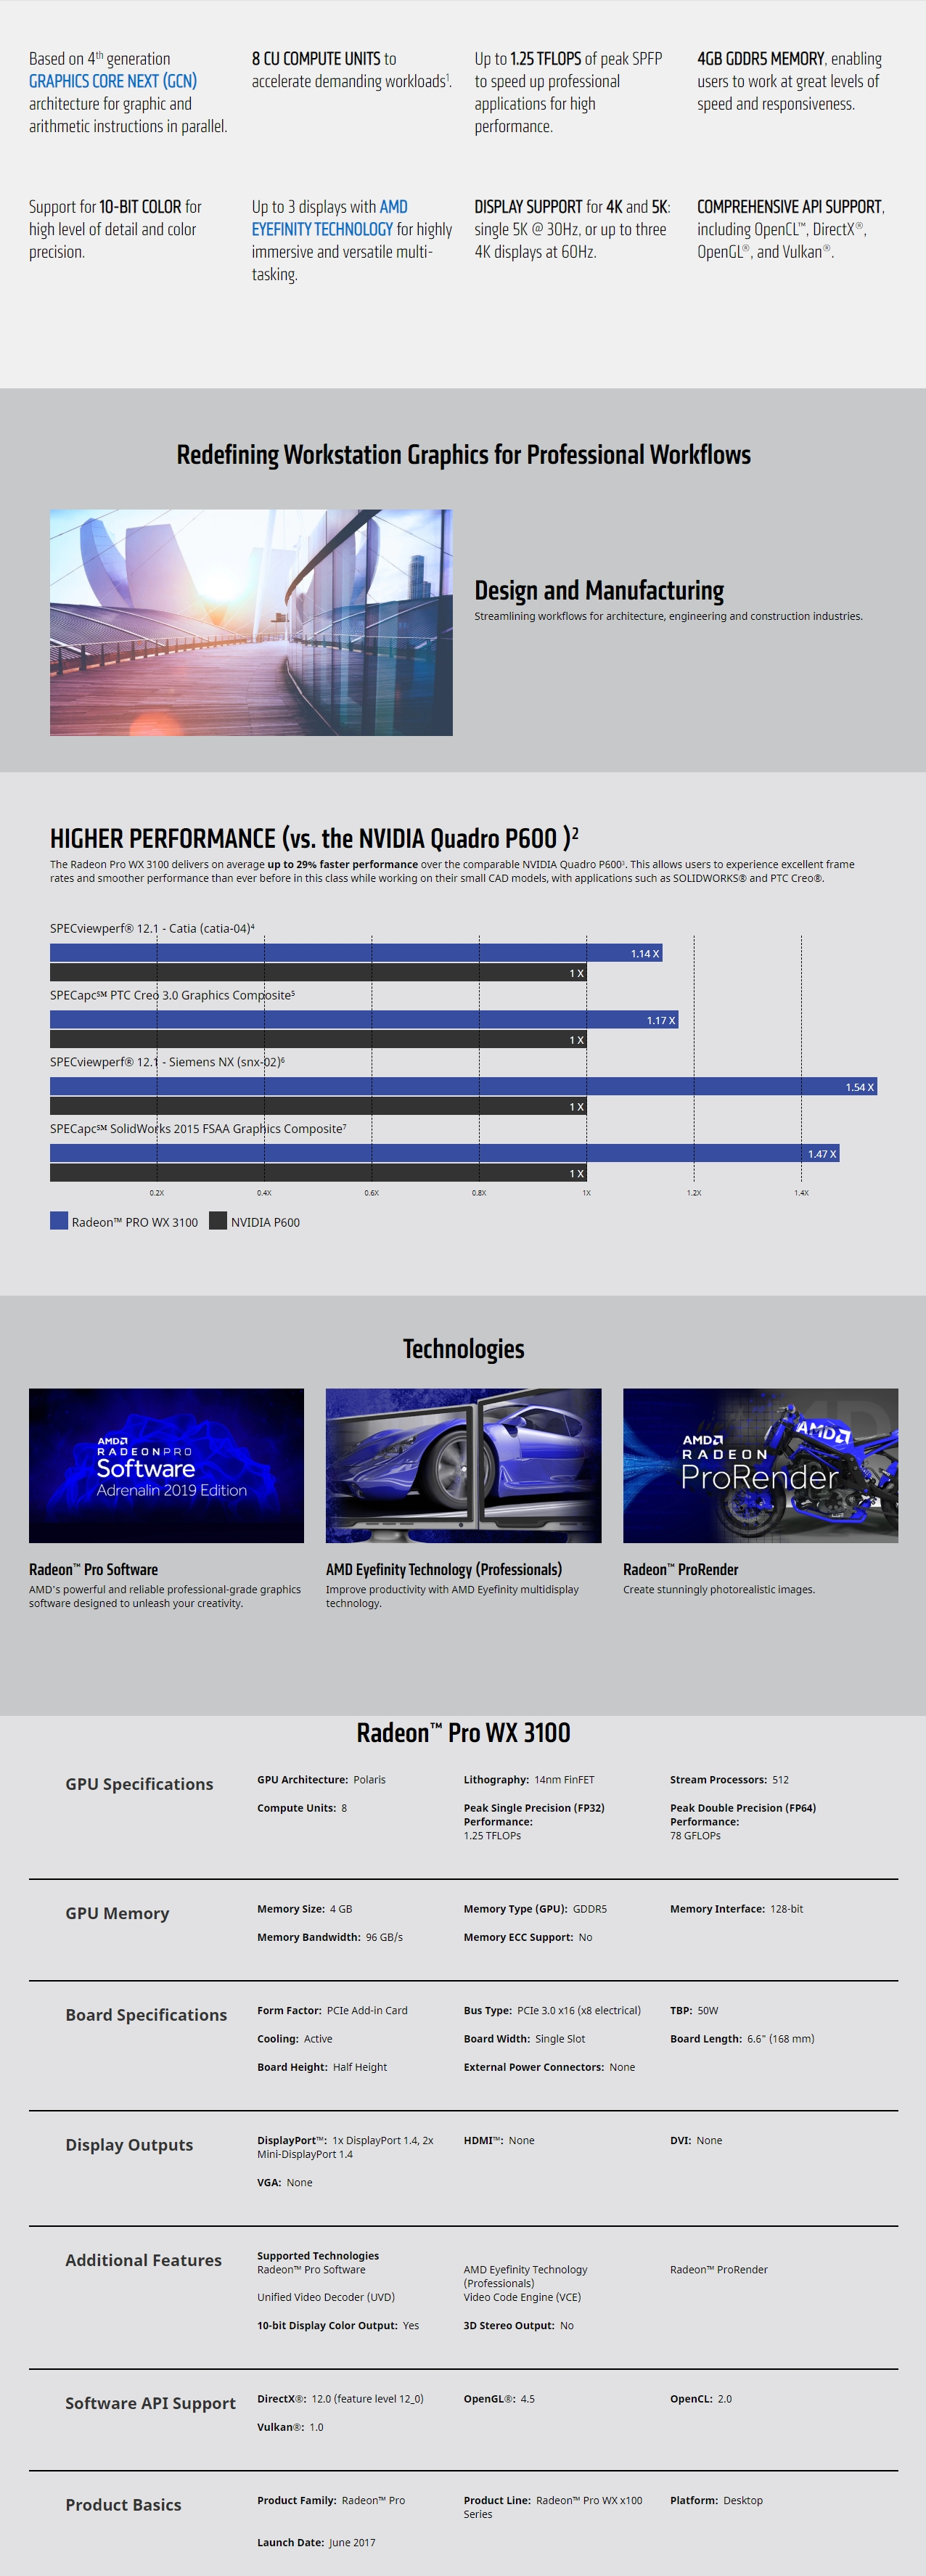 A large marketing image providing additional information about the product AMD Radeon Pro WX 3100 4GB GDDR5 - Additional alt info not provided